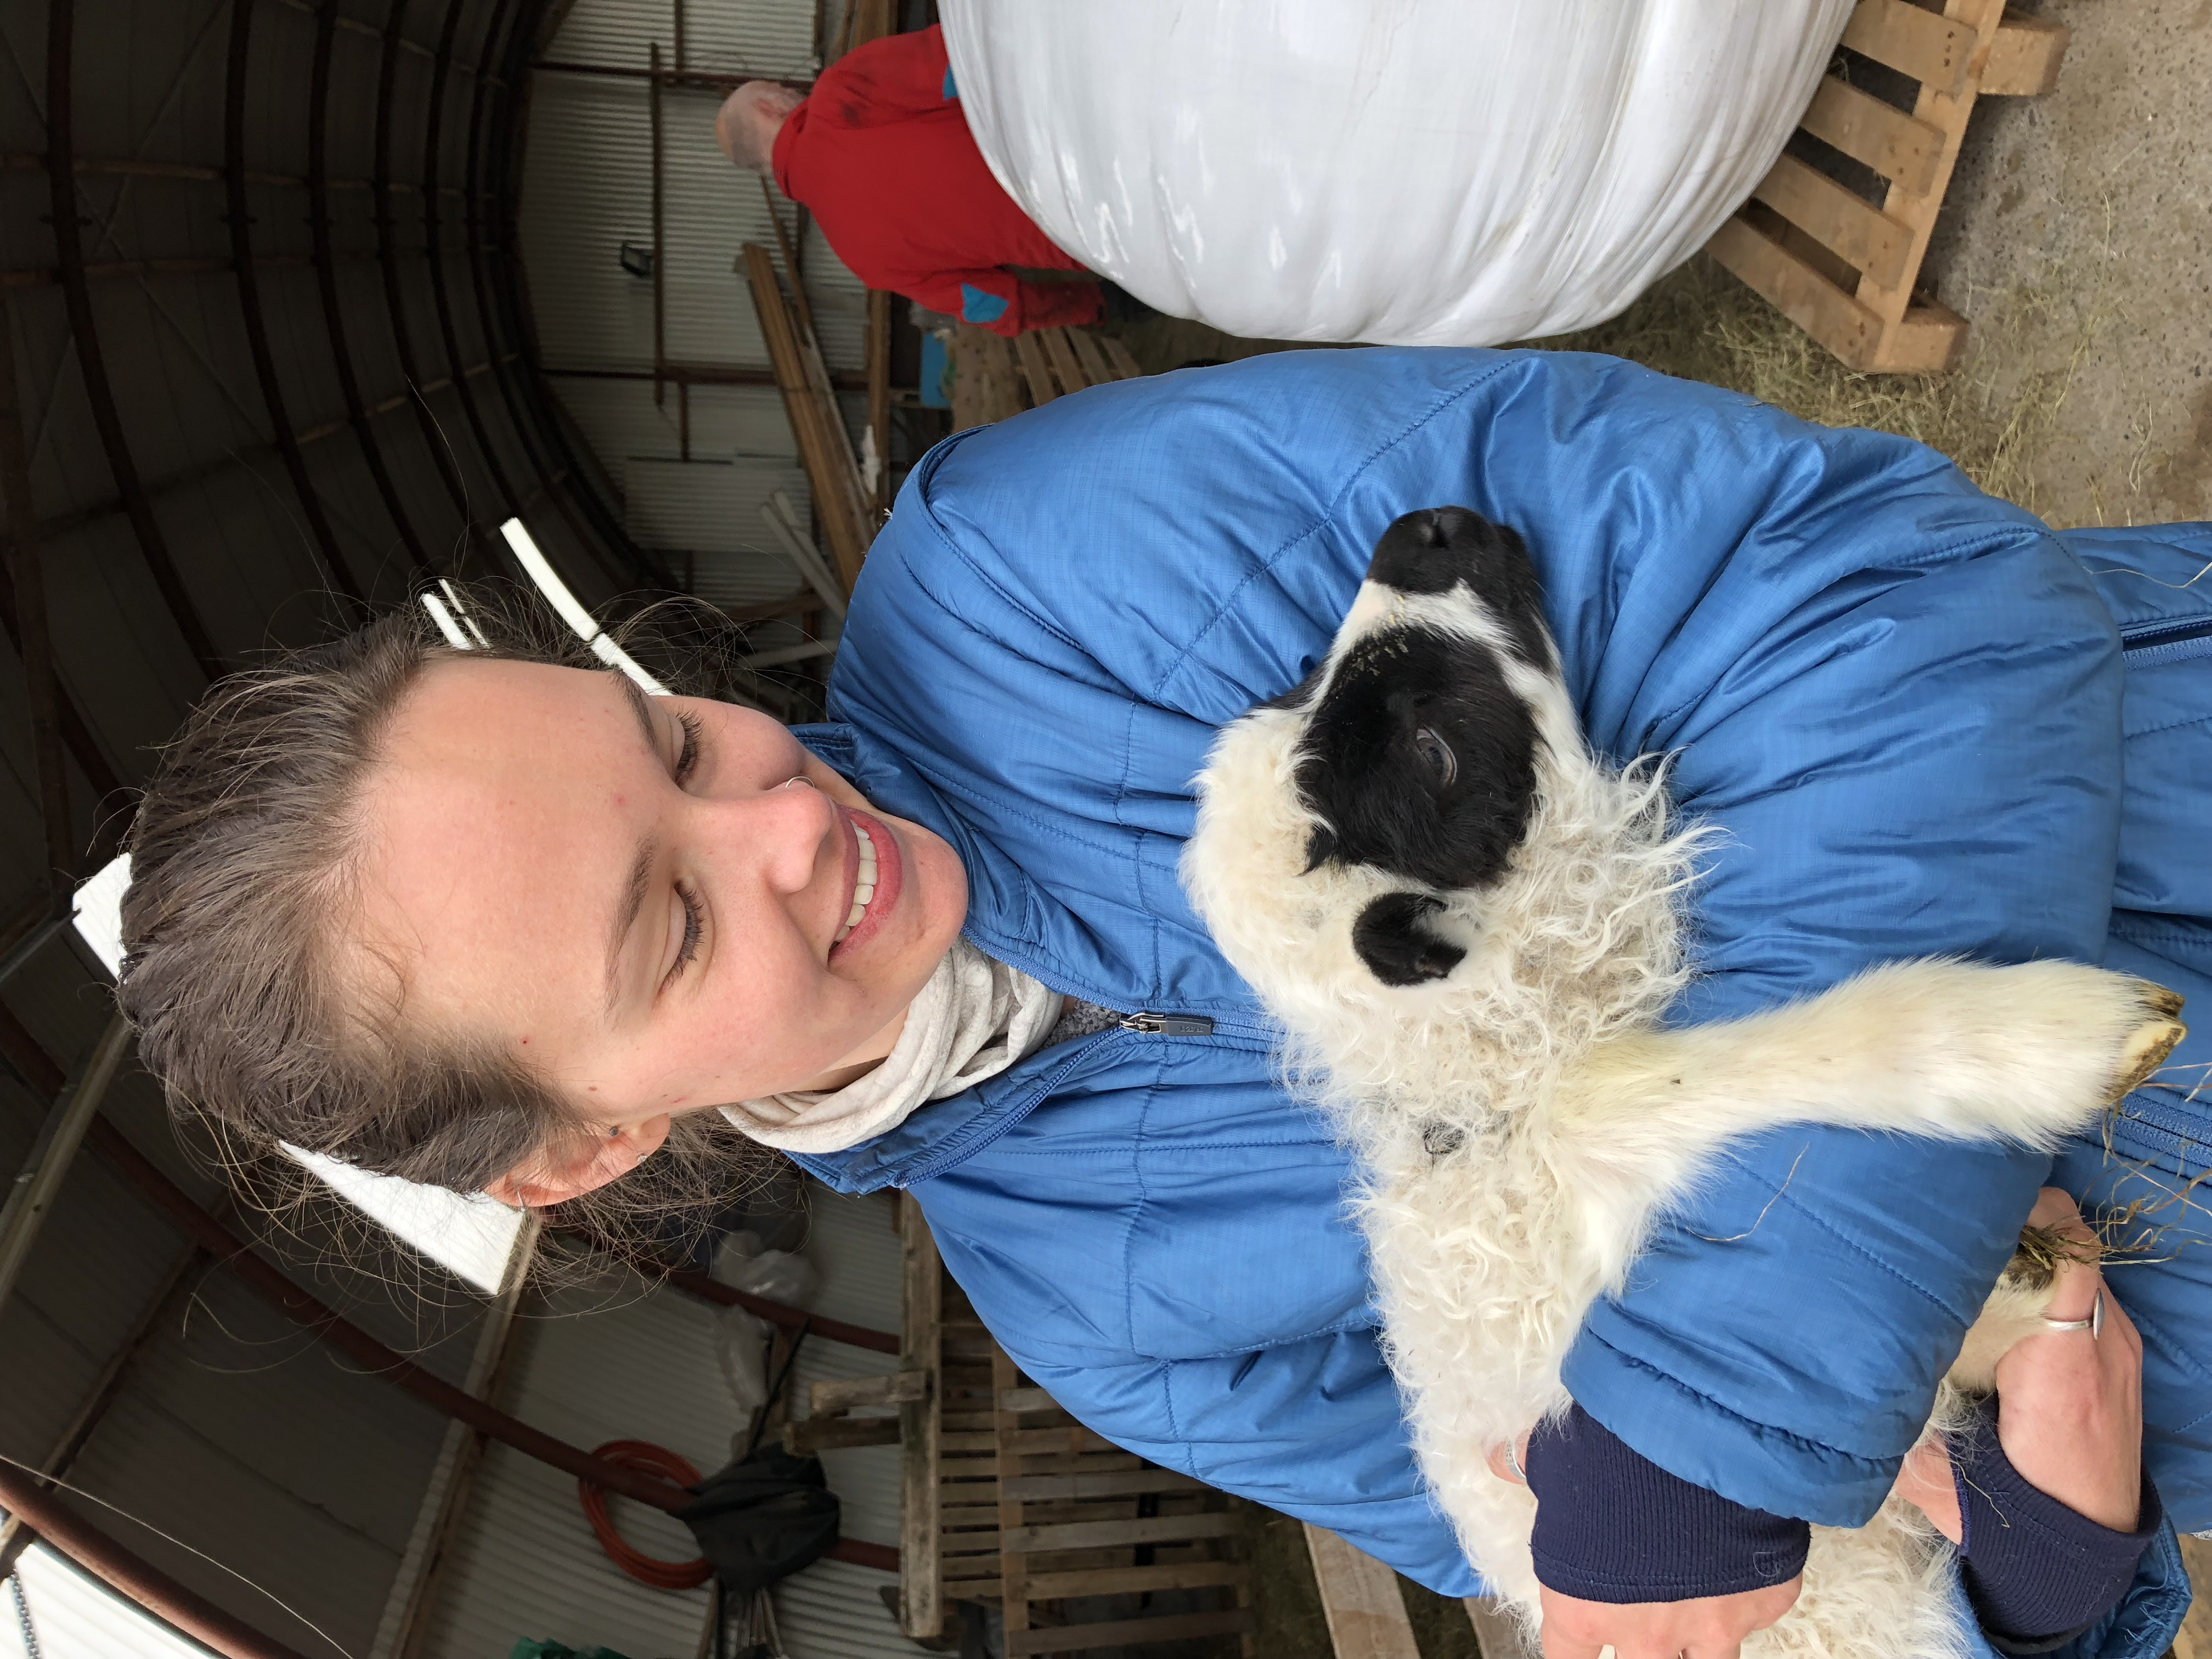 A spring lamb enjoying cuddles in the arms of a visitor.